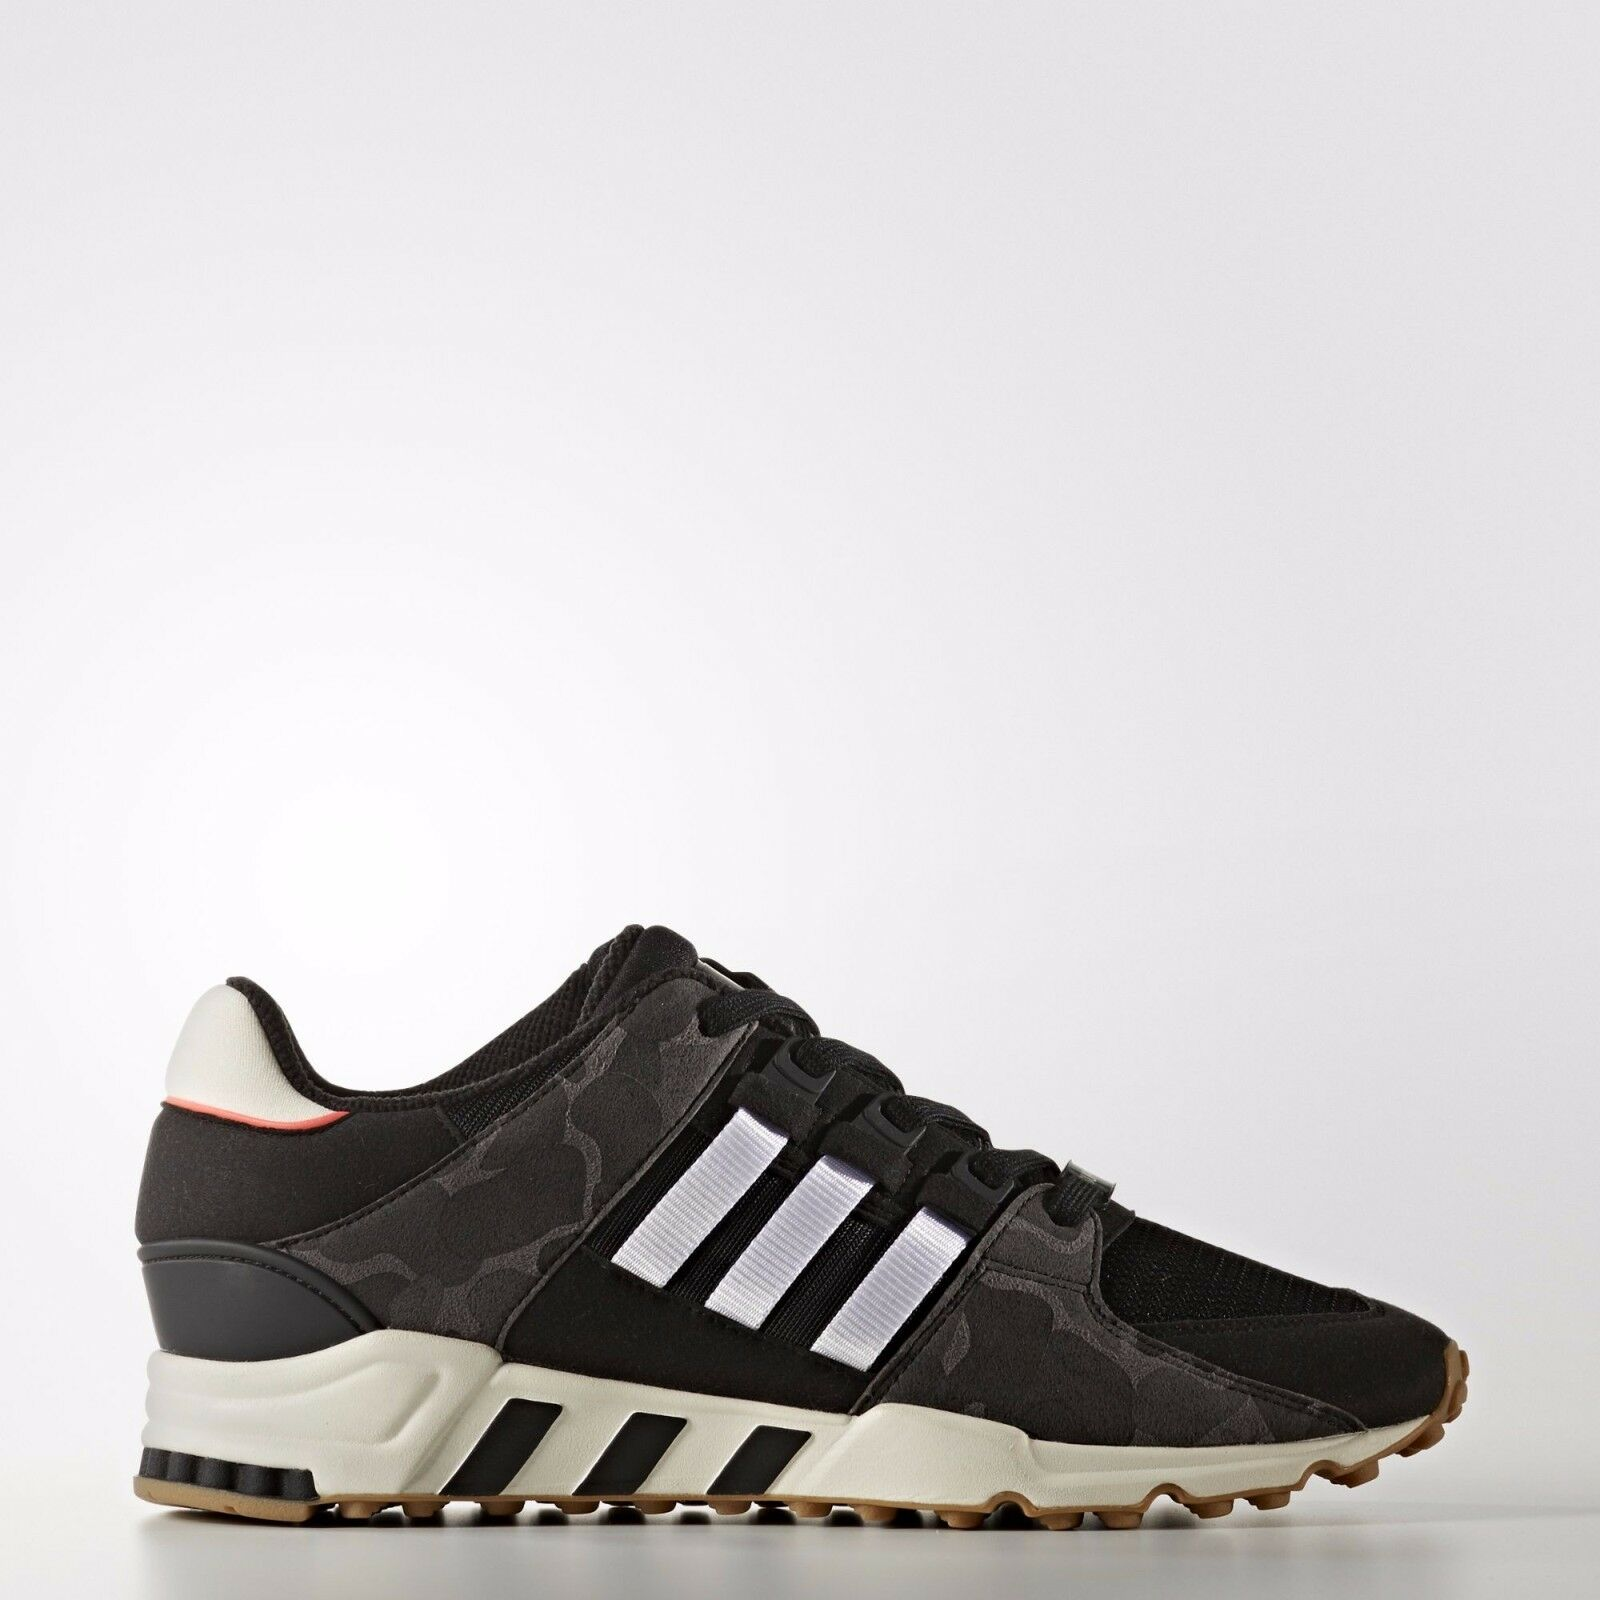 ADIDAS ADIDAS ADIDAS EQT SUPPORT RF BB1324 CAMO/CORE BLACK/GREY/OFF WHITE/TURBO RED/GUM SOLE 86b9ce